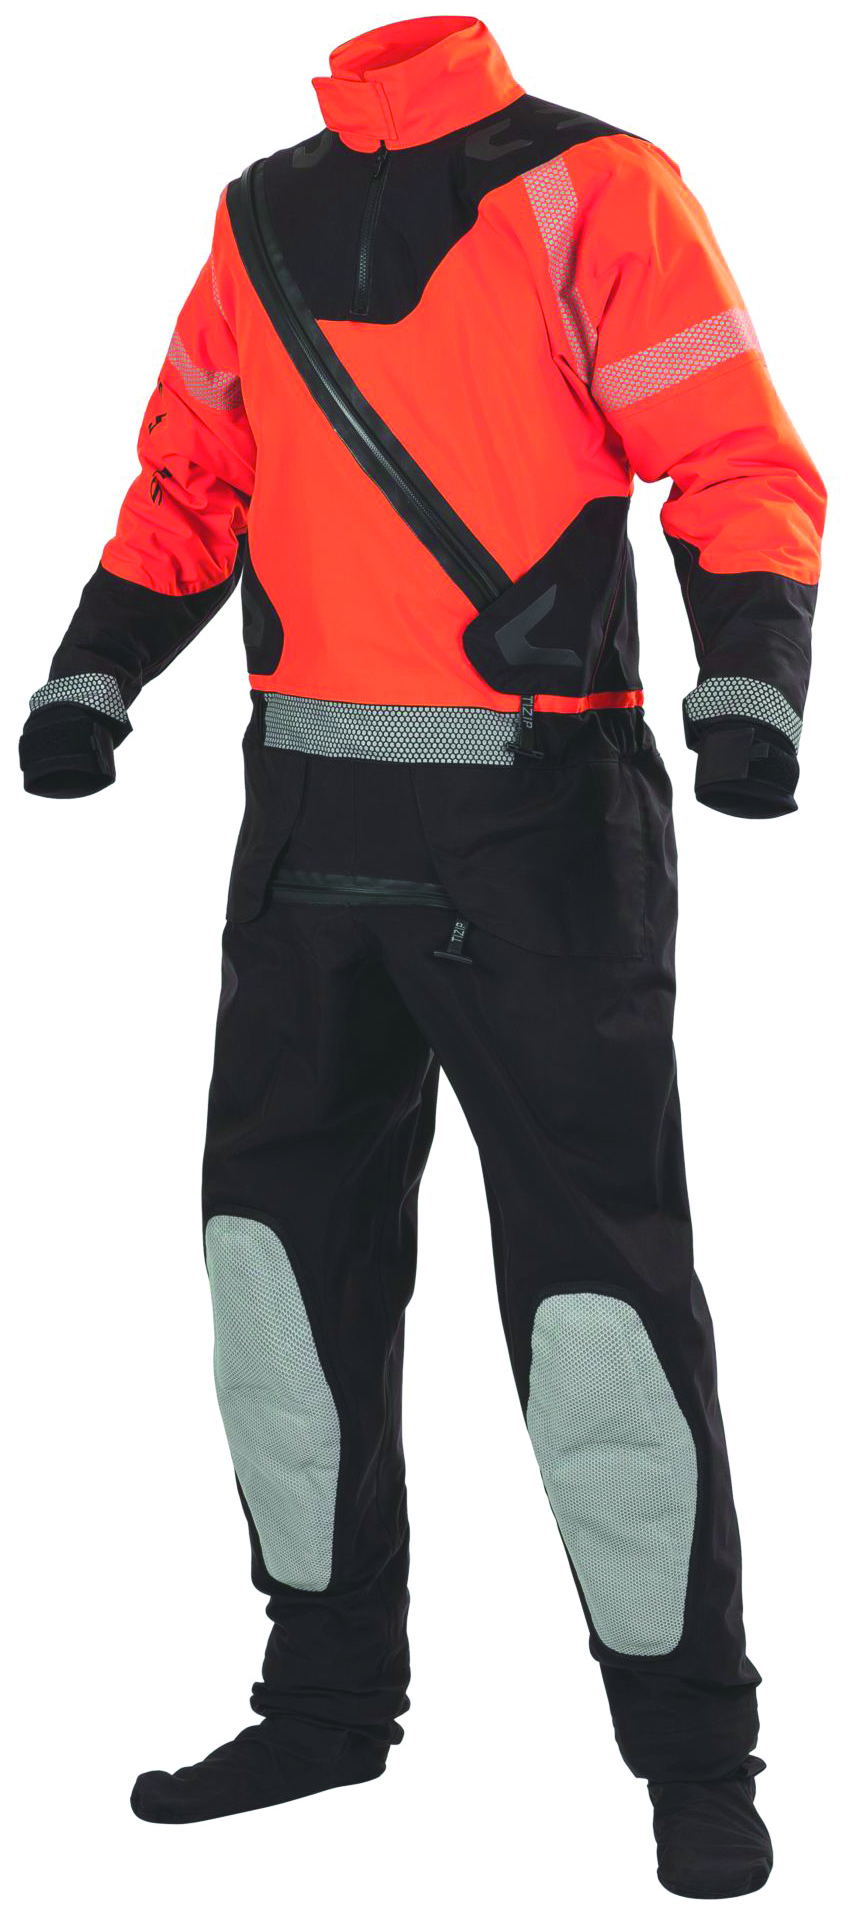 2000023957 - Rapid Rescue Extreme Surface Dry Suits-Rapid Rescue Extreme Surface Dry Suits-Red/Black, Size Medium----UOM: 1/EA